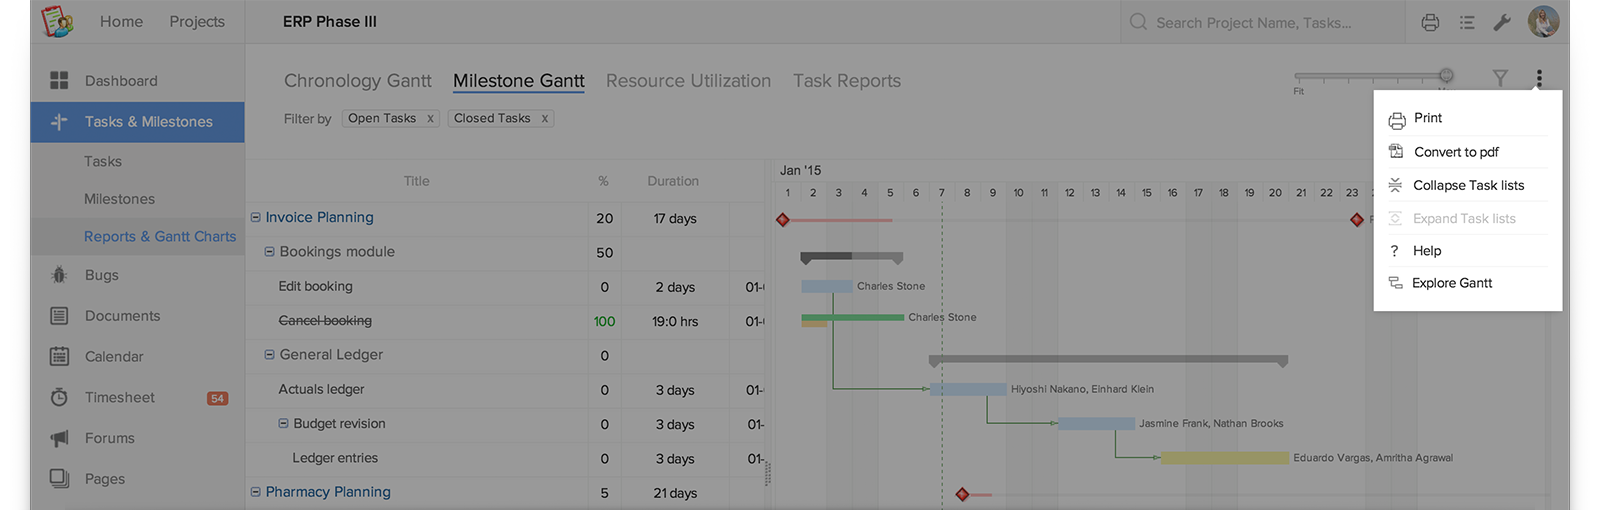 Share Your Gantt Chart